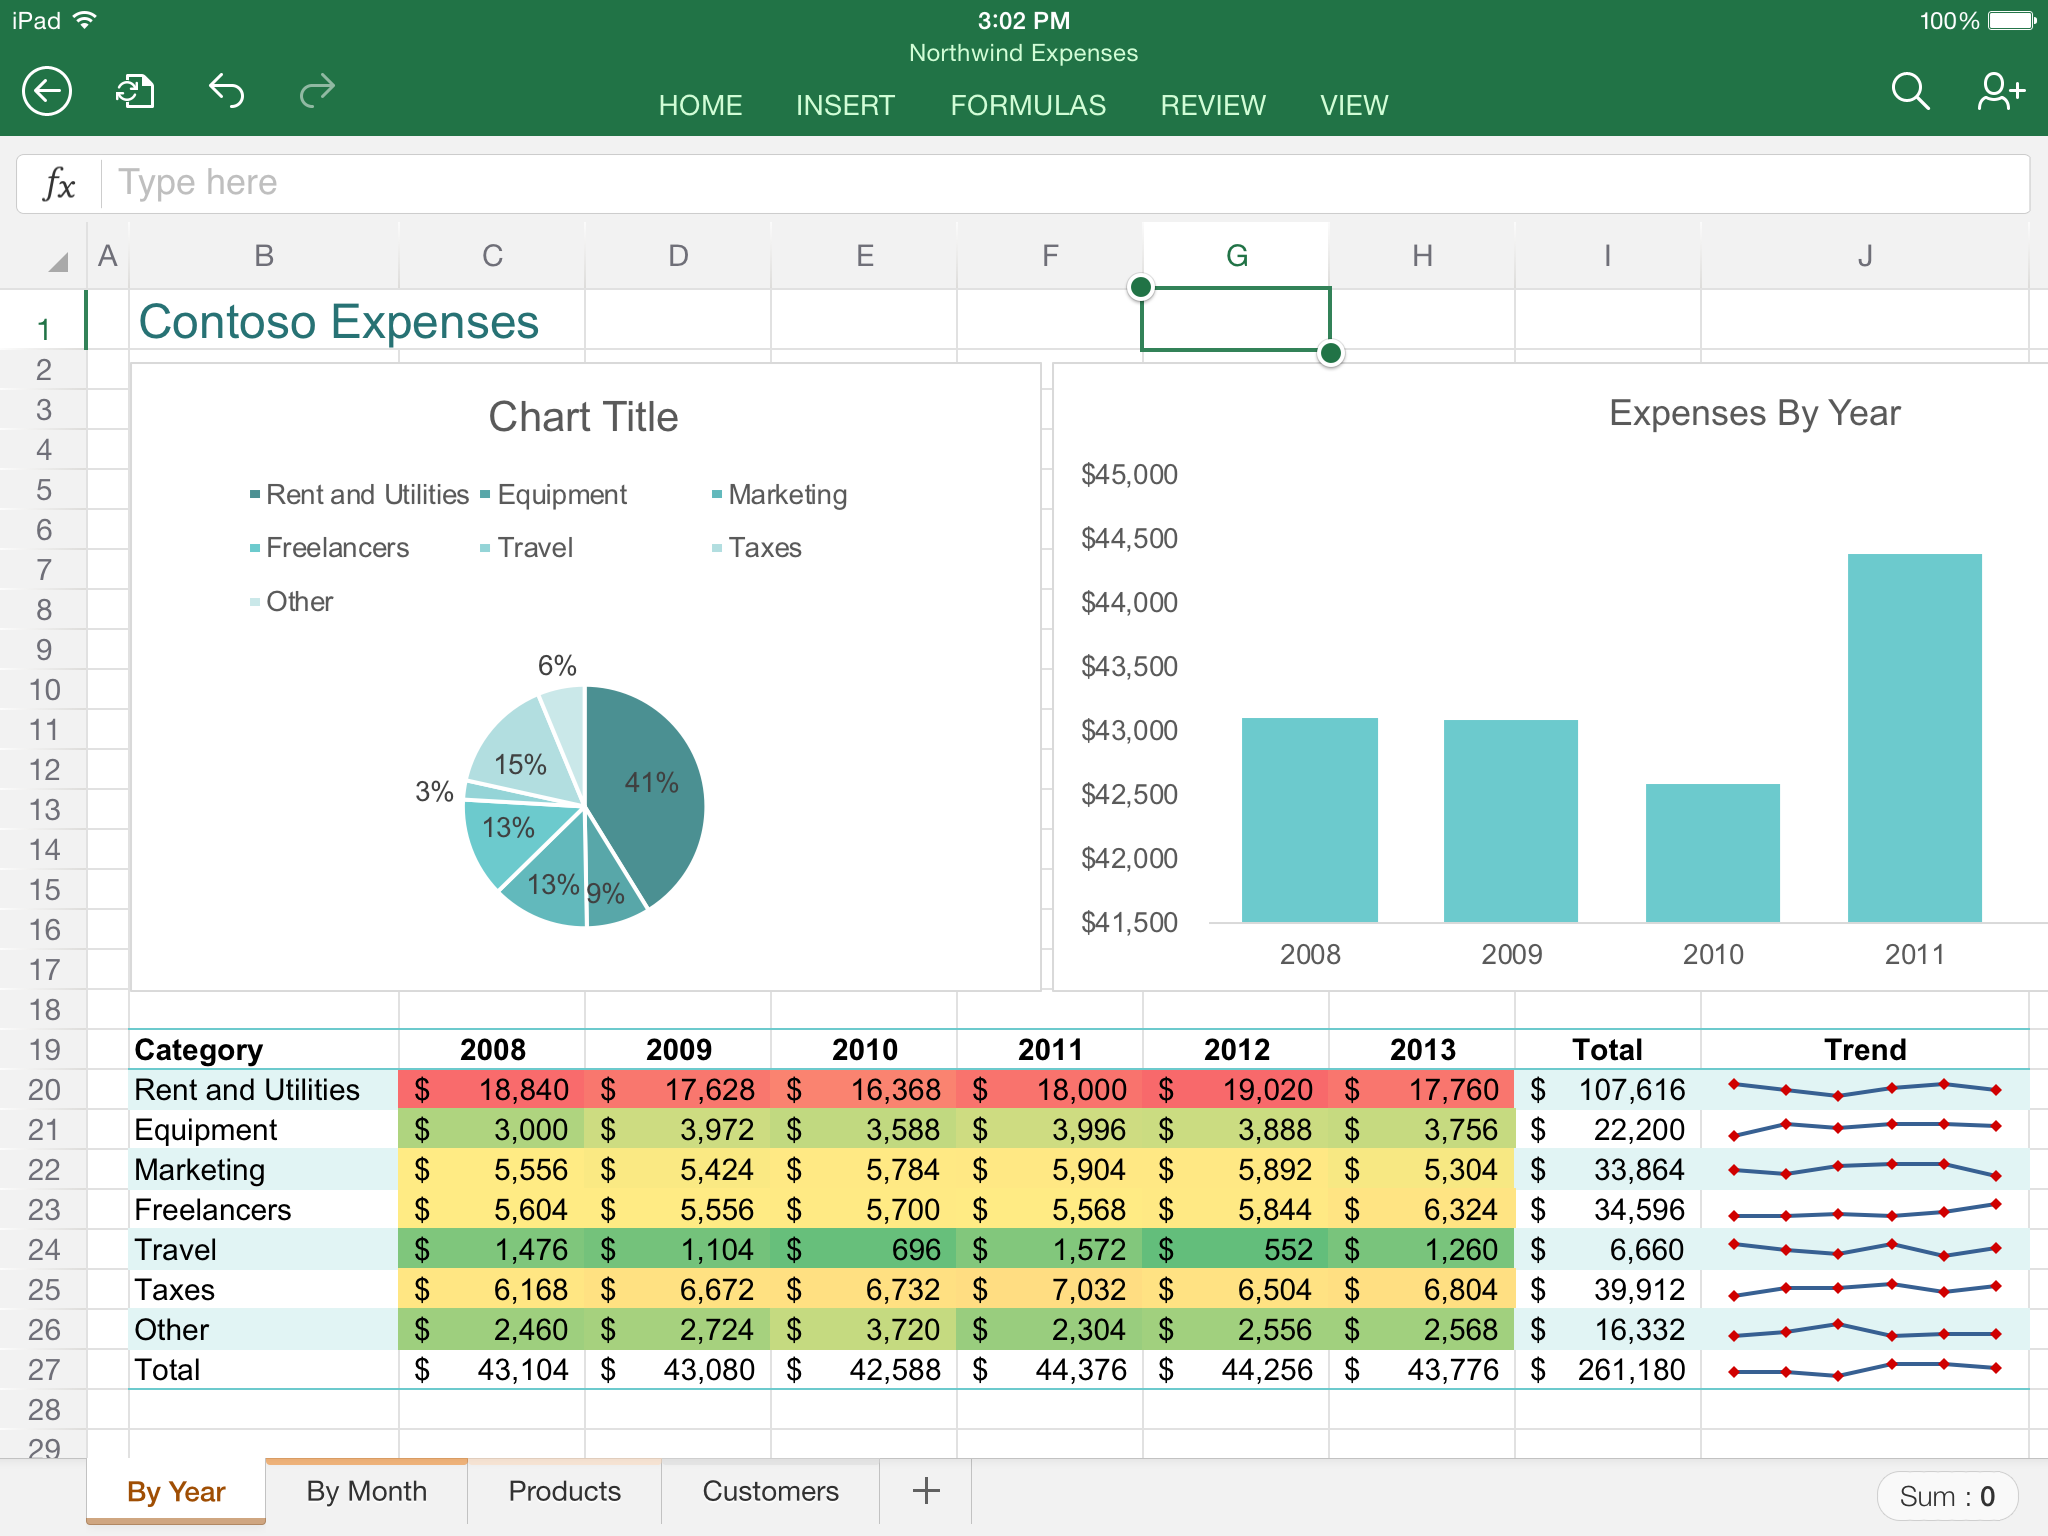 Ediblewildsus  Pleasant App Highlight Excel  Mobile Digital Now With Interesting Excel In Action With Captivating How To Return In Excel Also Consolidate Function In Excel In Addition Learn Excel Online Free And How To Rank In Excel As Well As Fill Down Excel Additionally Logical Test Excel From Youstonybrookedu With Ediblewildsus  Interesting App Highlight Excel  Mobile Digital Now With Captivating Excel In Action And Pleasant How To Return In Excel Also Consolidate Function In Excel In Addition Learn Excel Online Free From Youstonybrookedu